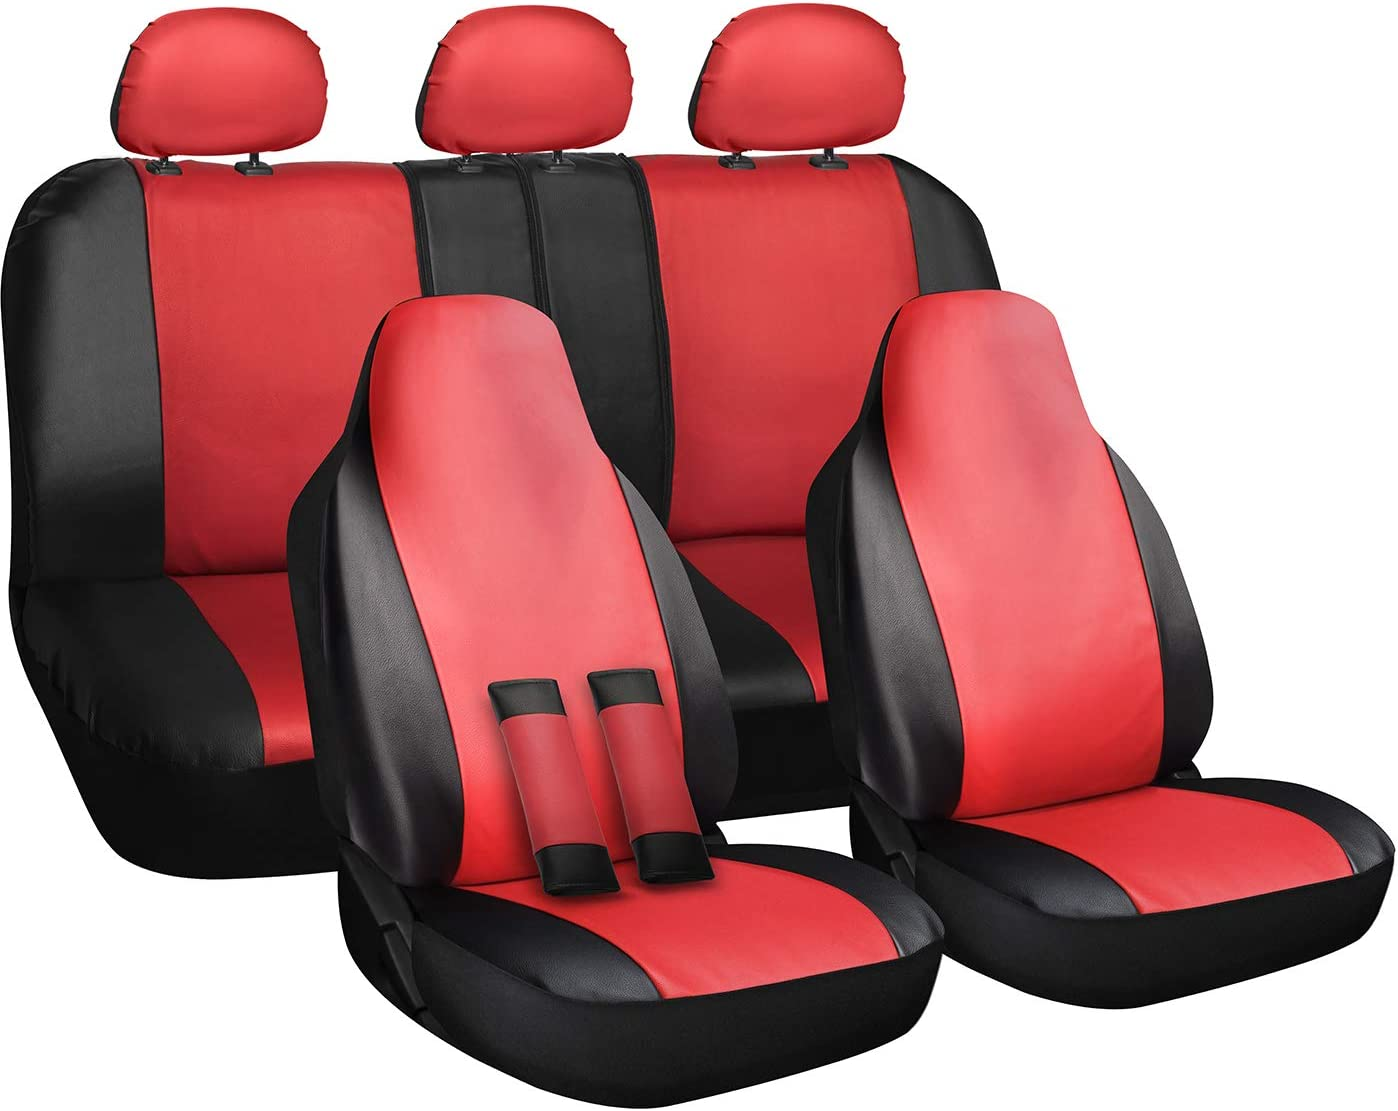 OxGord Car Seat Cover - PU Leather Two Toned Front Low Bucket 50-50 60-40 Rear Split Bench - Universal Fit Cars, Trucks, SUVs, Vans - 10 pc Complete Full Set